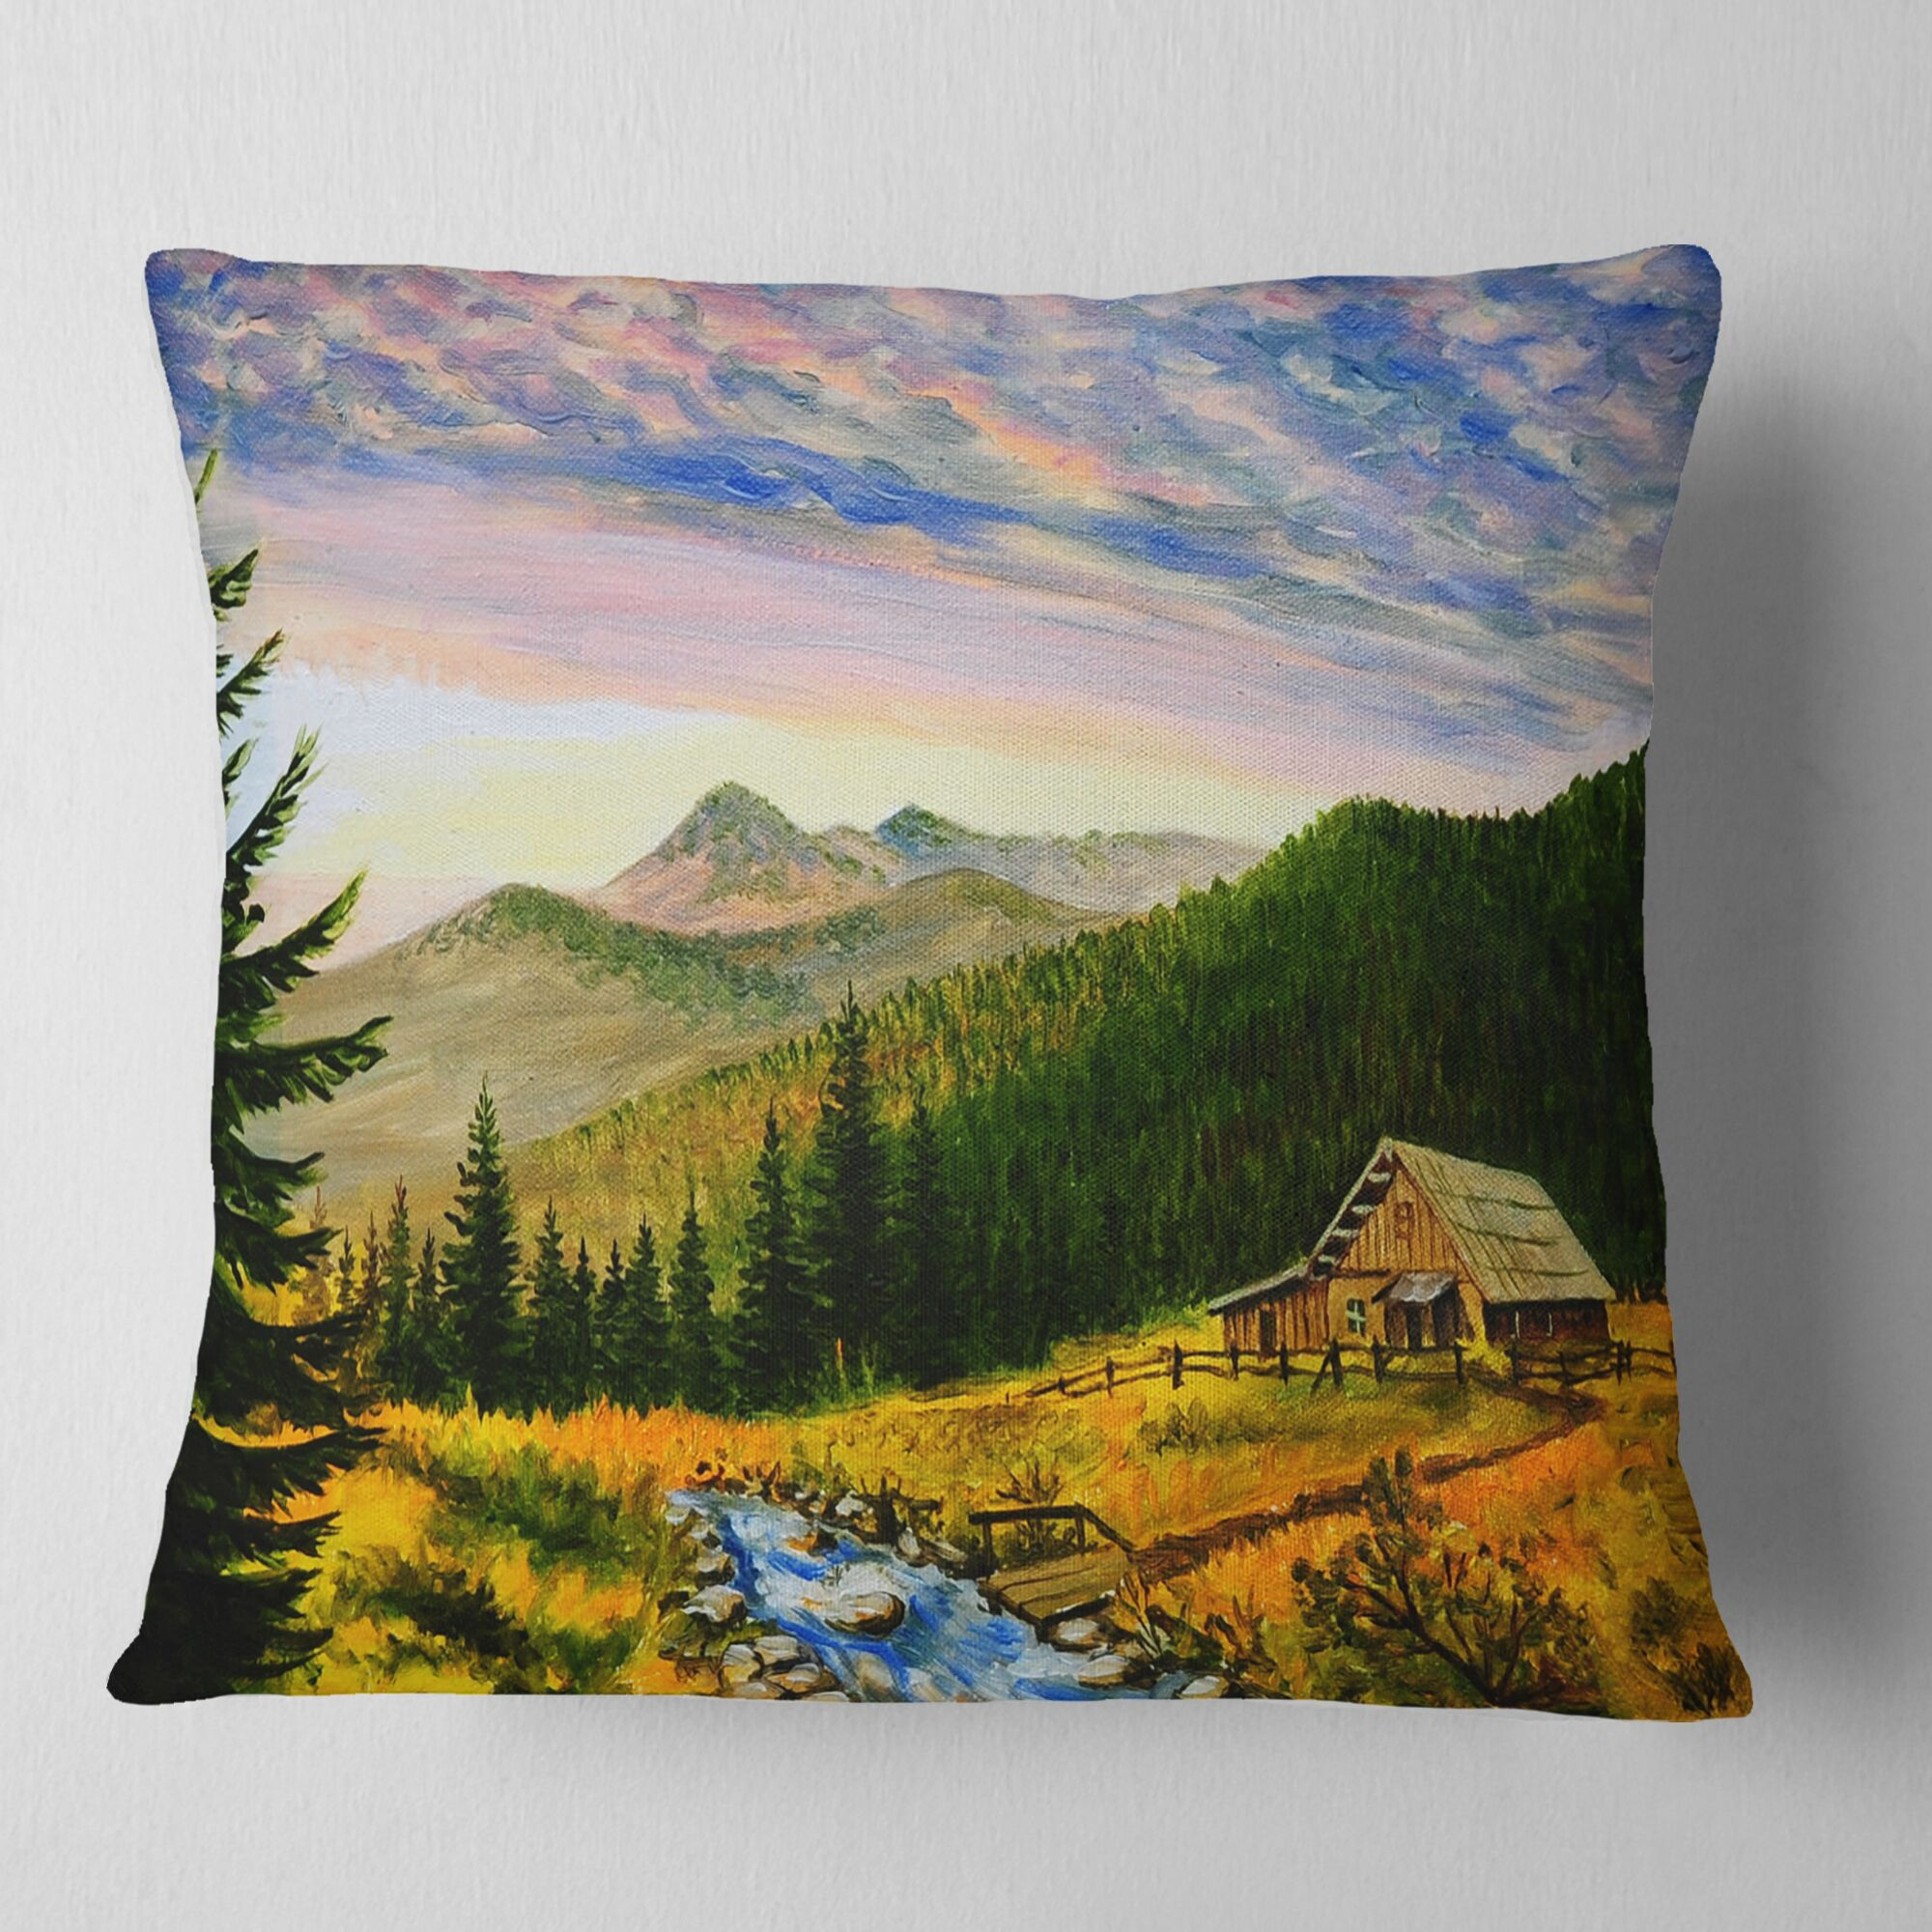 Landscape Sunset Pillow Size: 26